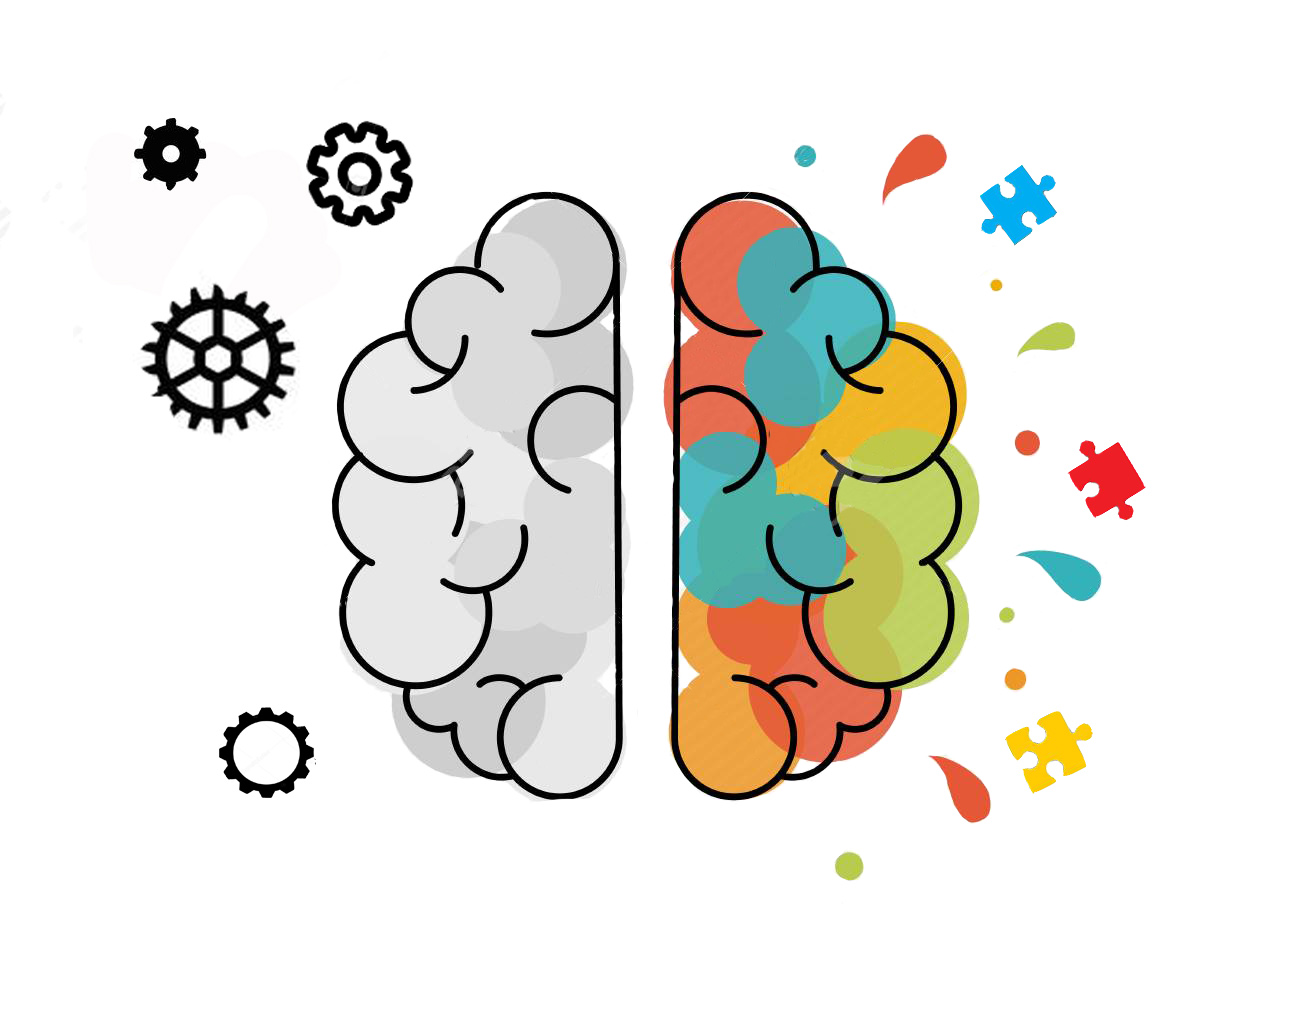 Human brain hemisphere concept illustration of rational and creative thinking. Ideal for new ideas in business or artistic project. EPS10 vector.